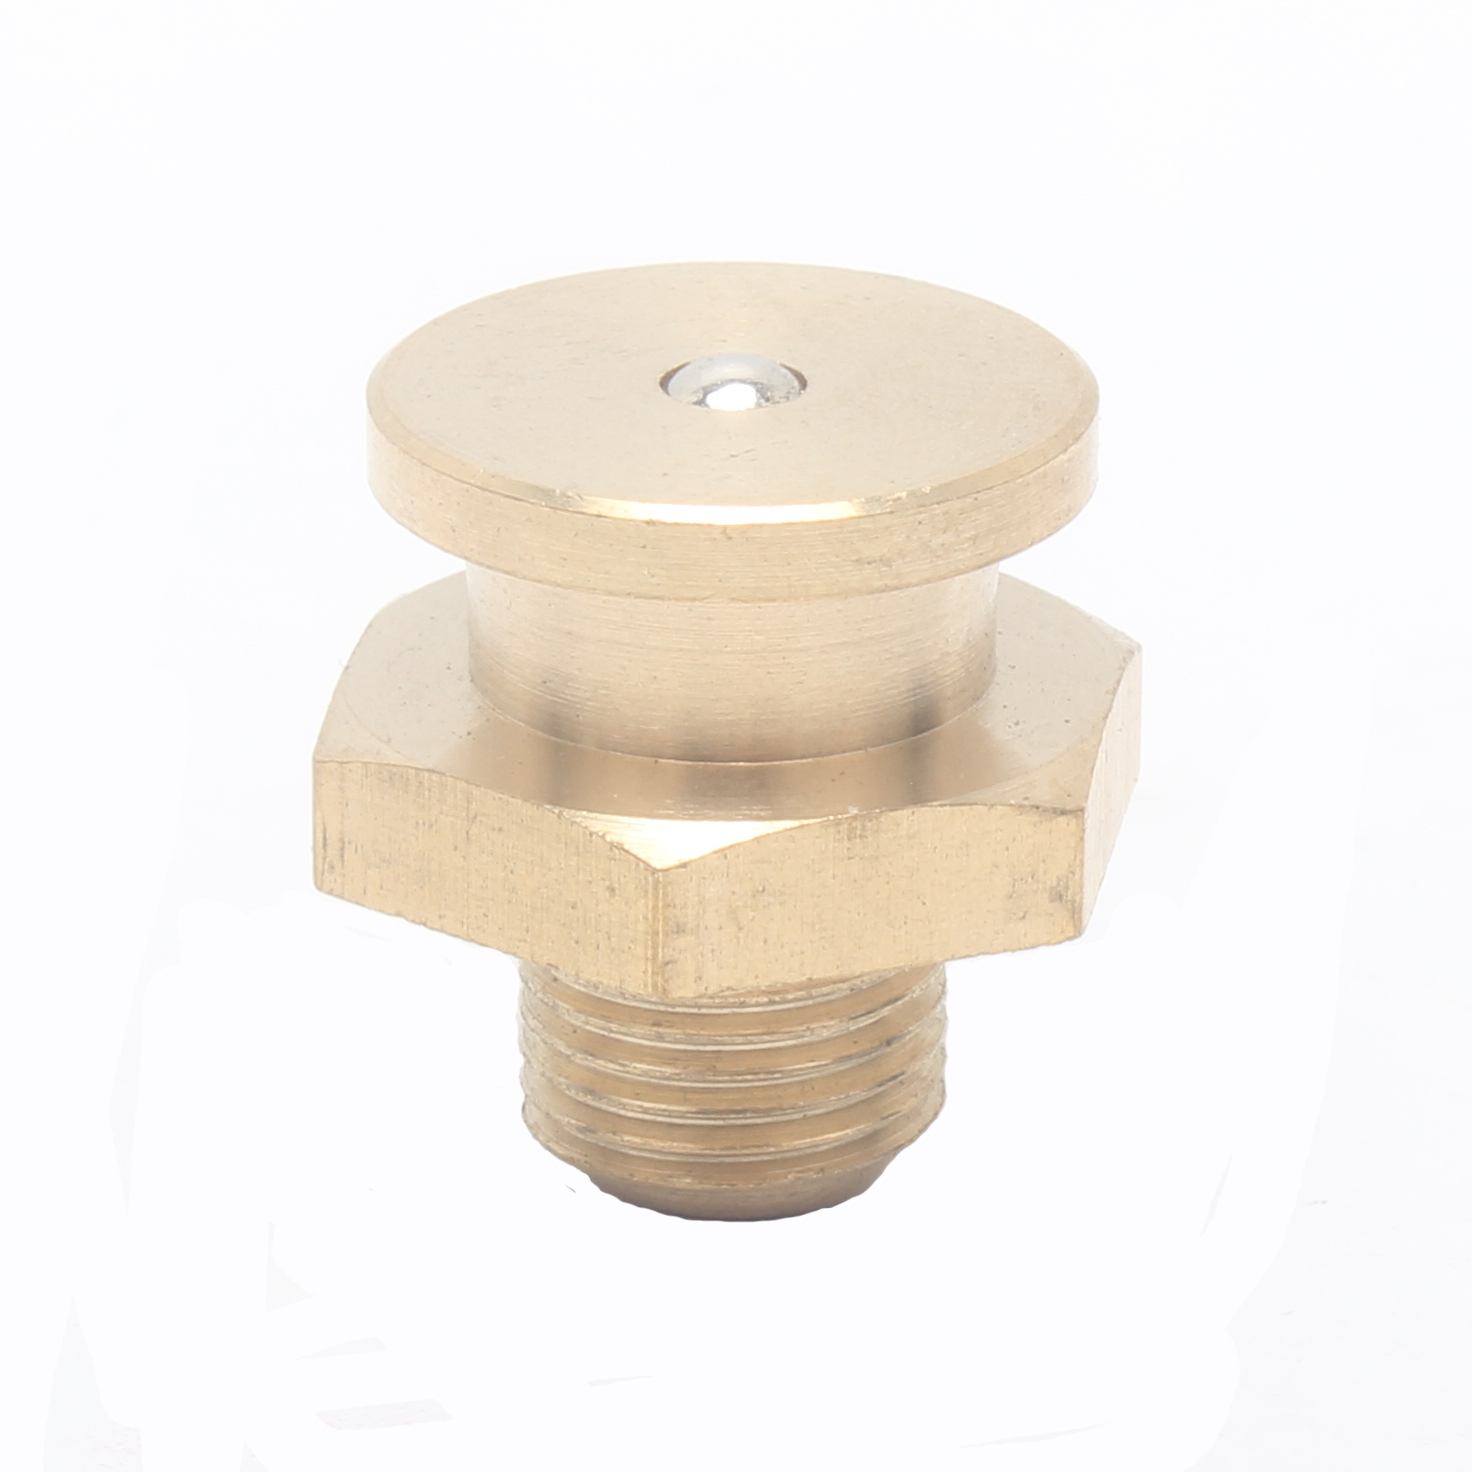 All copper flat button glib applanation injection nozzle marine flat button glib glib flathead glib glib flat